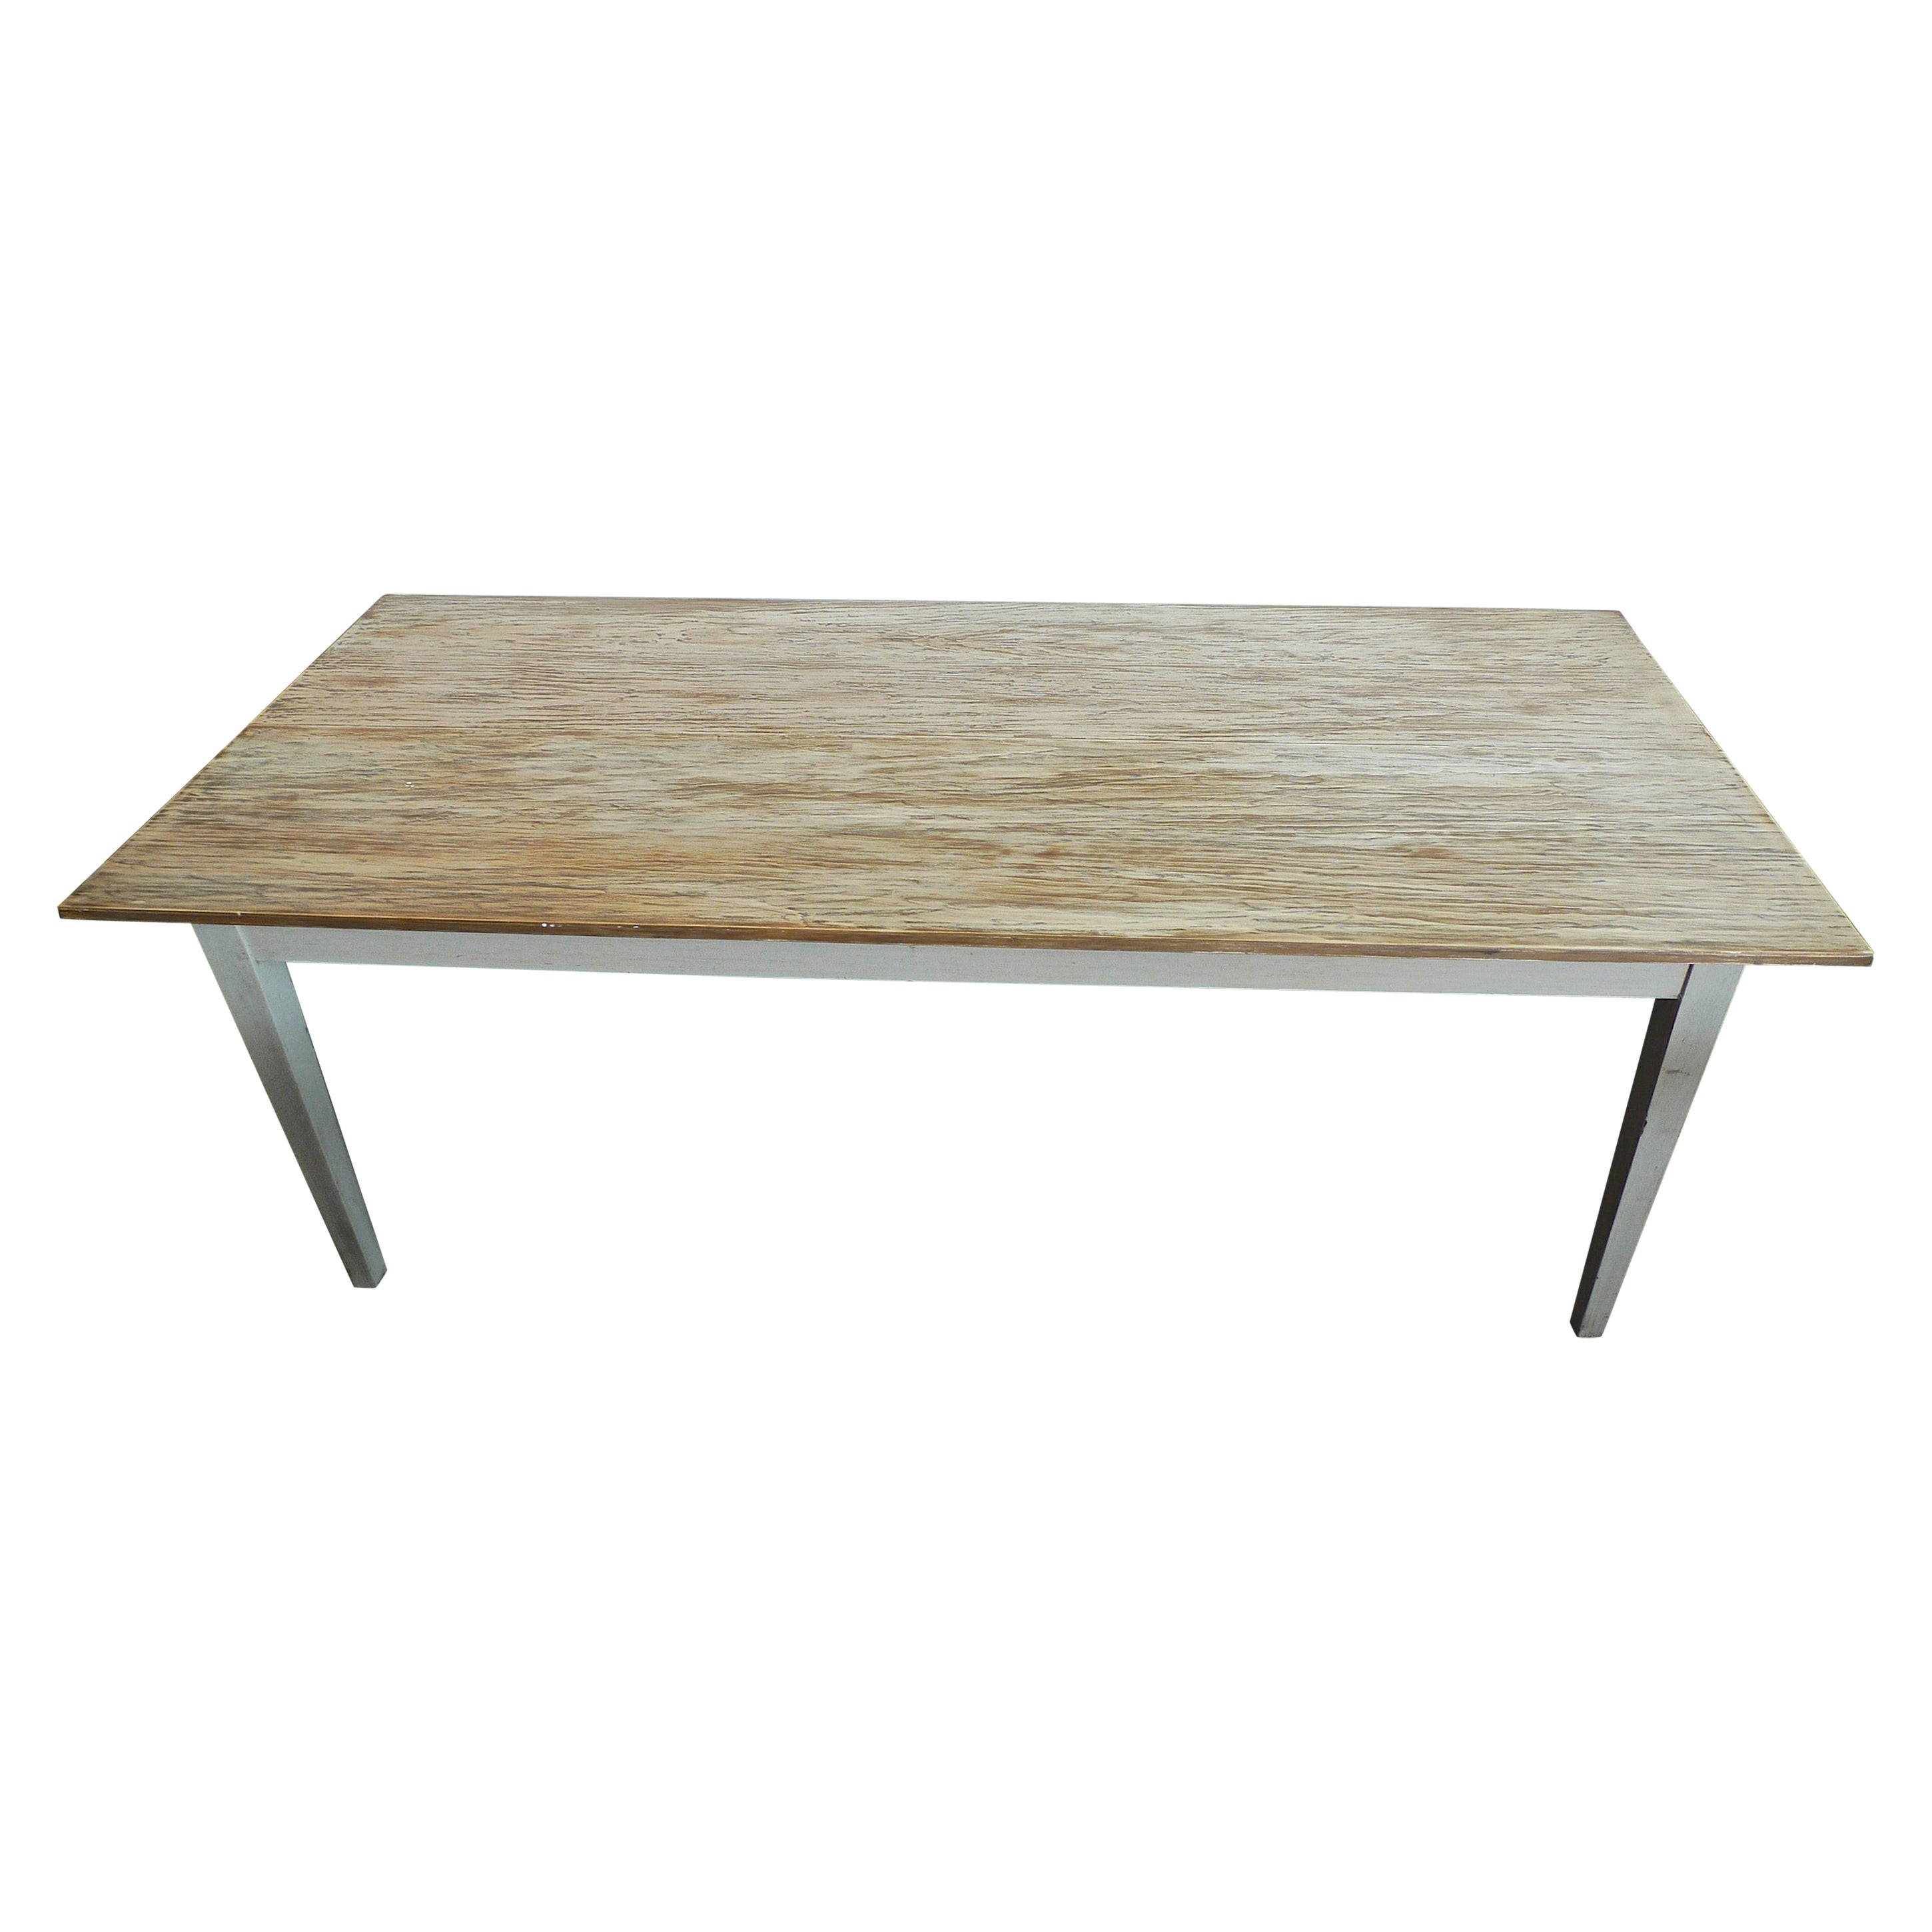 Contemporary French Country Farmhouse Dining Table